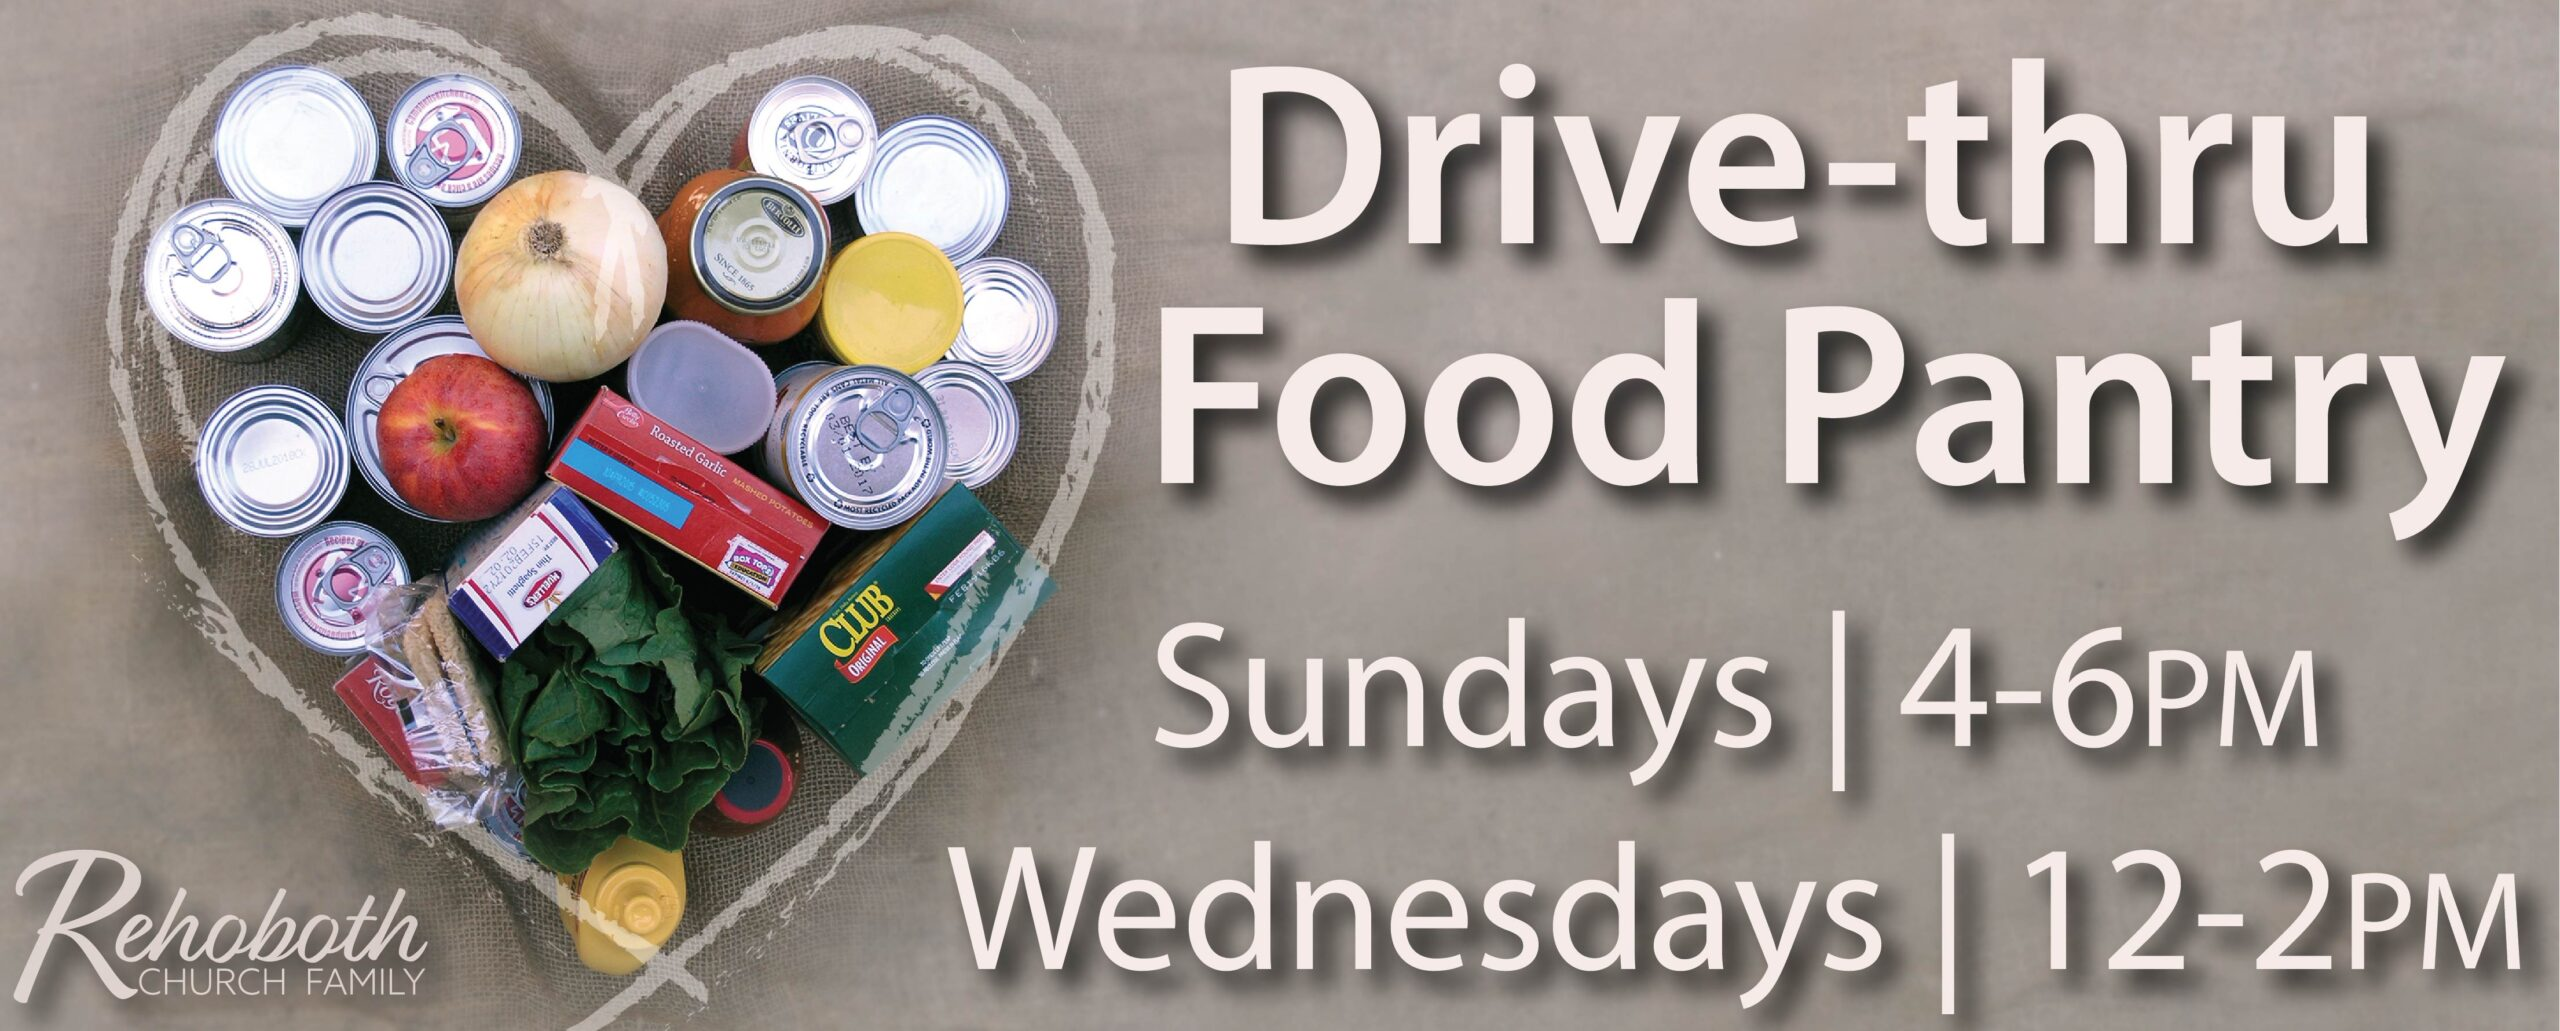 4.21 Food Pantry web banner Sun & Wed-01